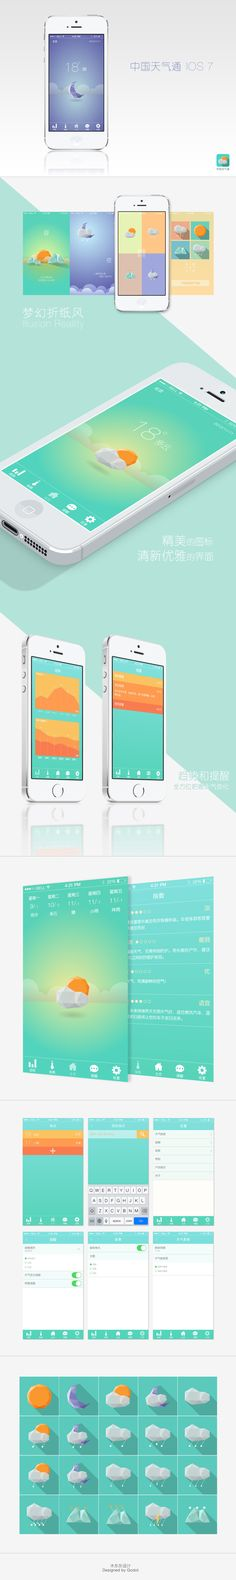 Disseny d'interfície d'usuari (UI) #mobile #inspiration #design #weather